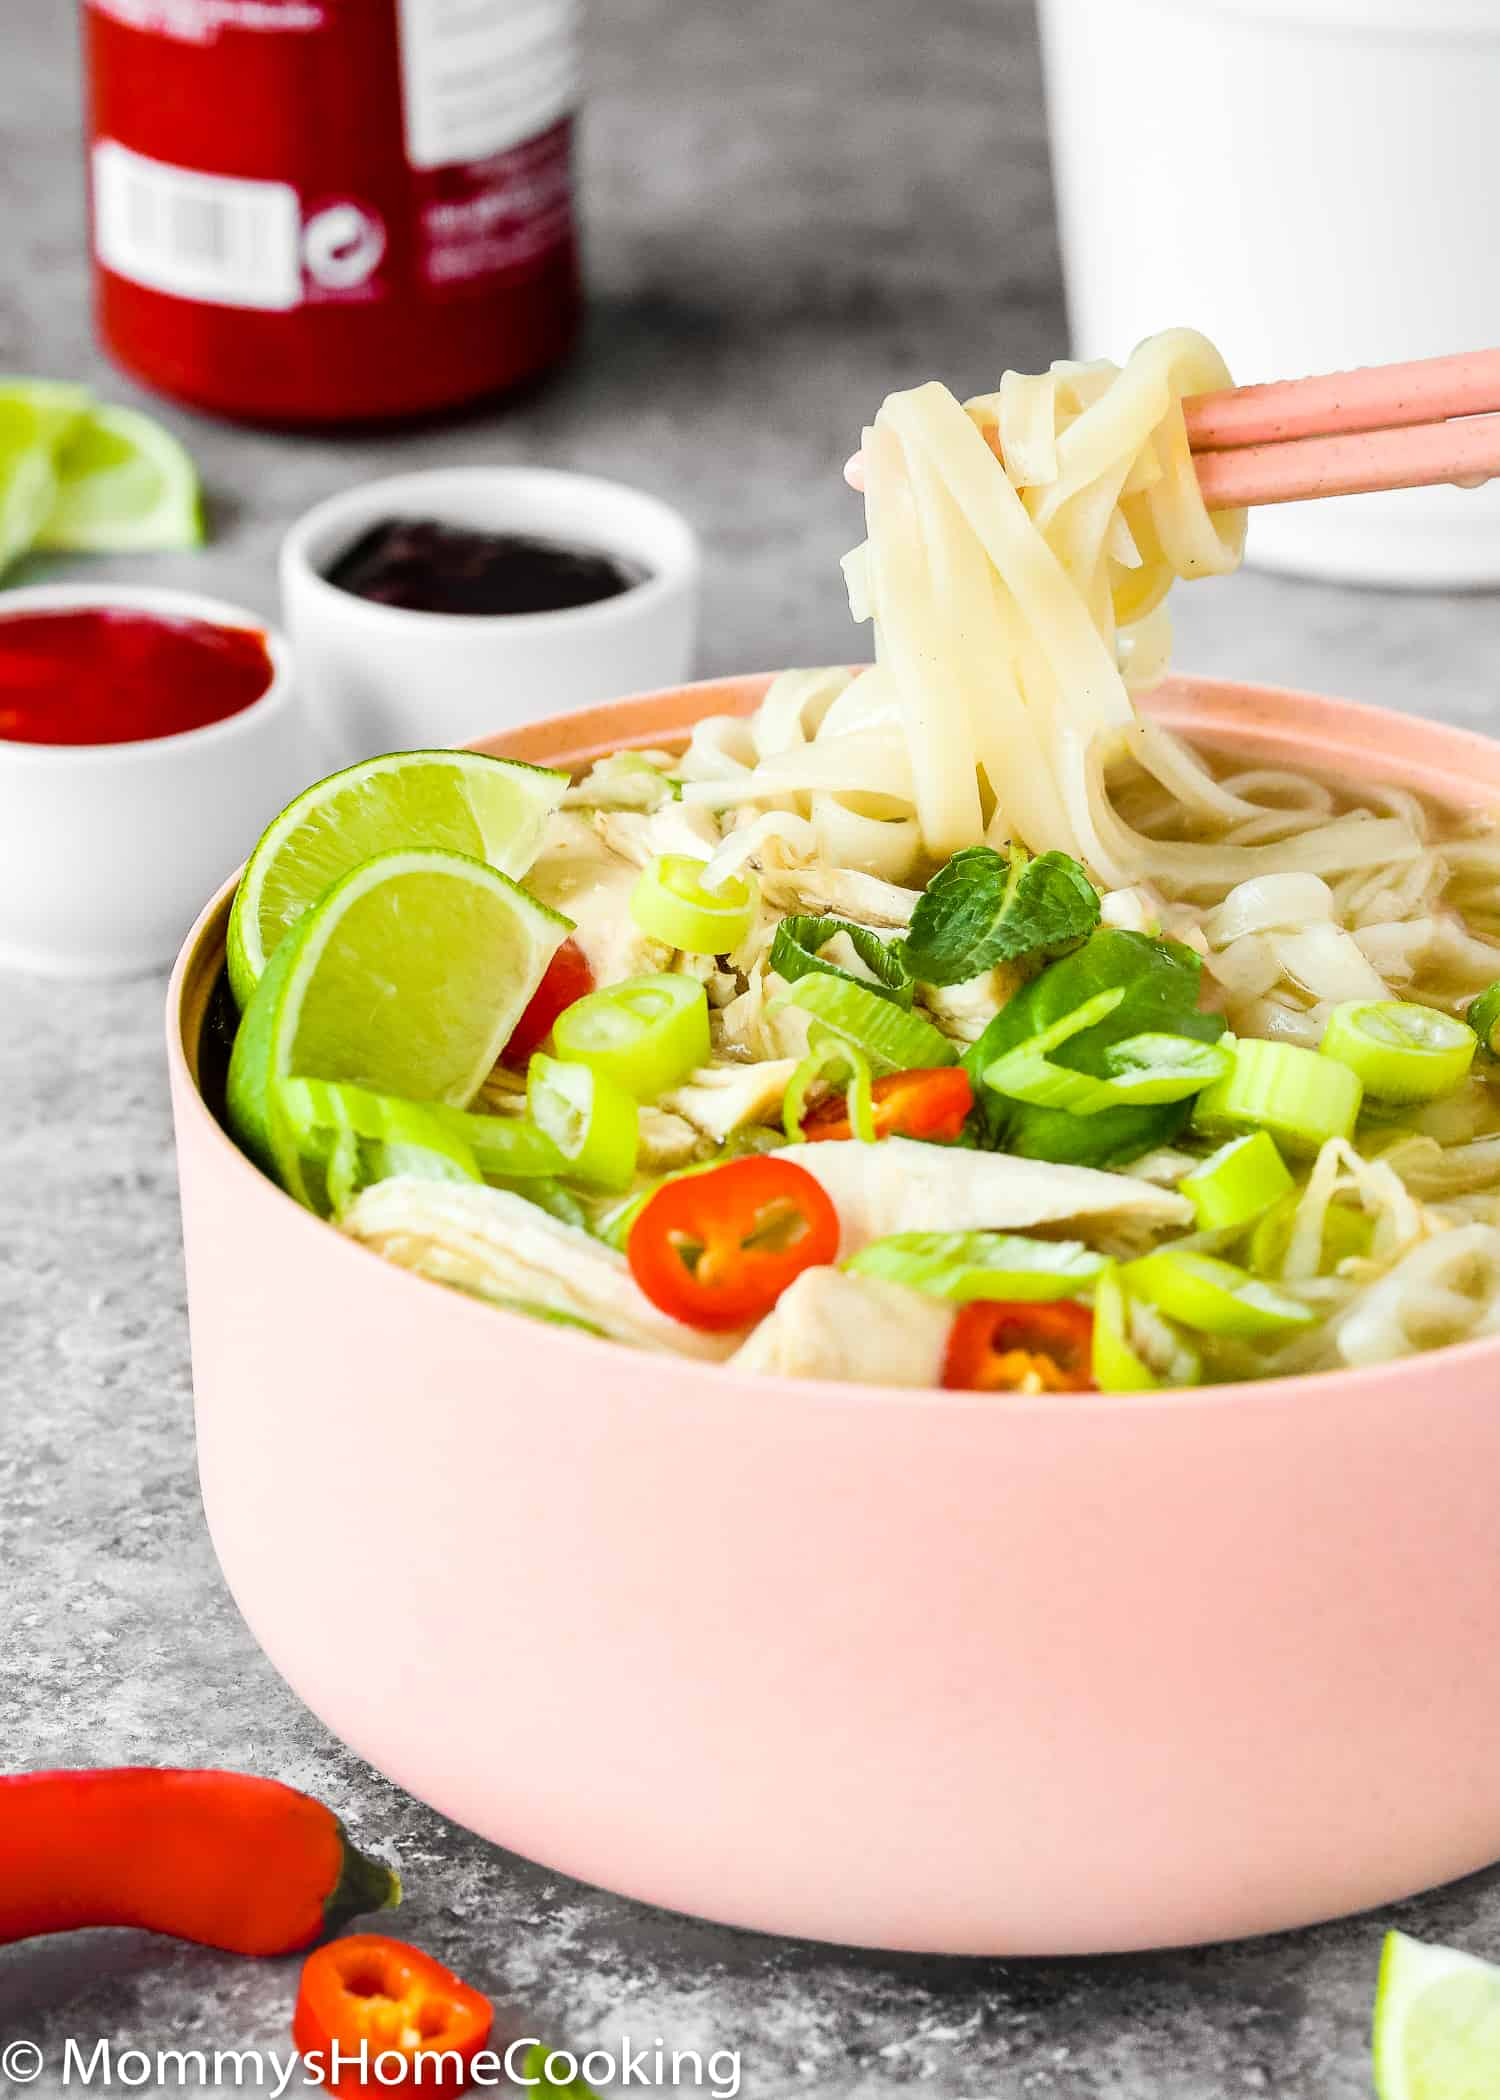 This Easy Instant Pot Chicken Pho is light, fragrant and totally delicious! Made from scratch and in a fraction of the time, this Vietnamese soup recipe takes 30 minutes to make thanks to the pressure cooker's magic. https://mommyshomecooking.com